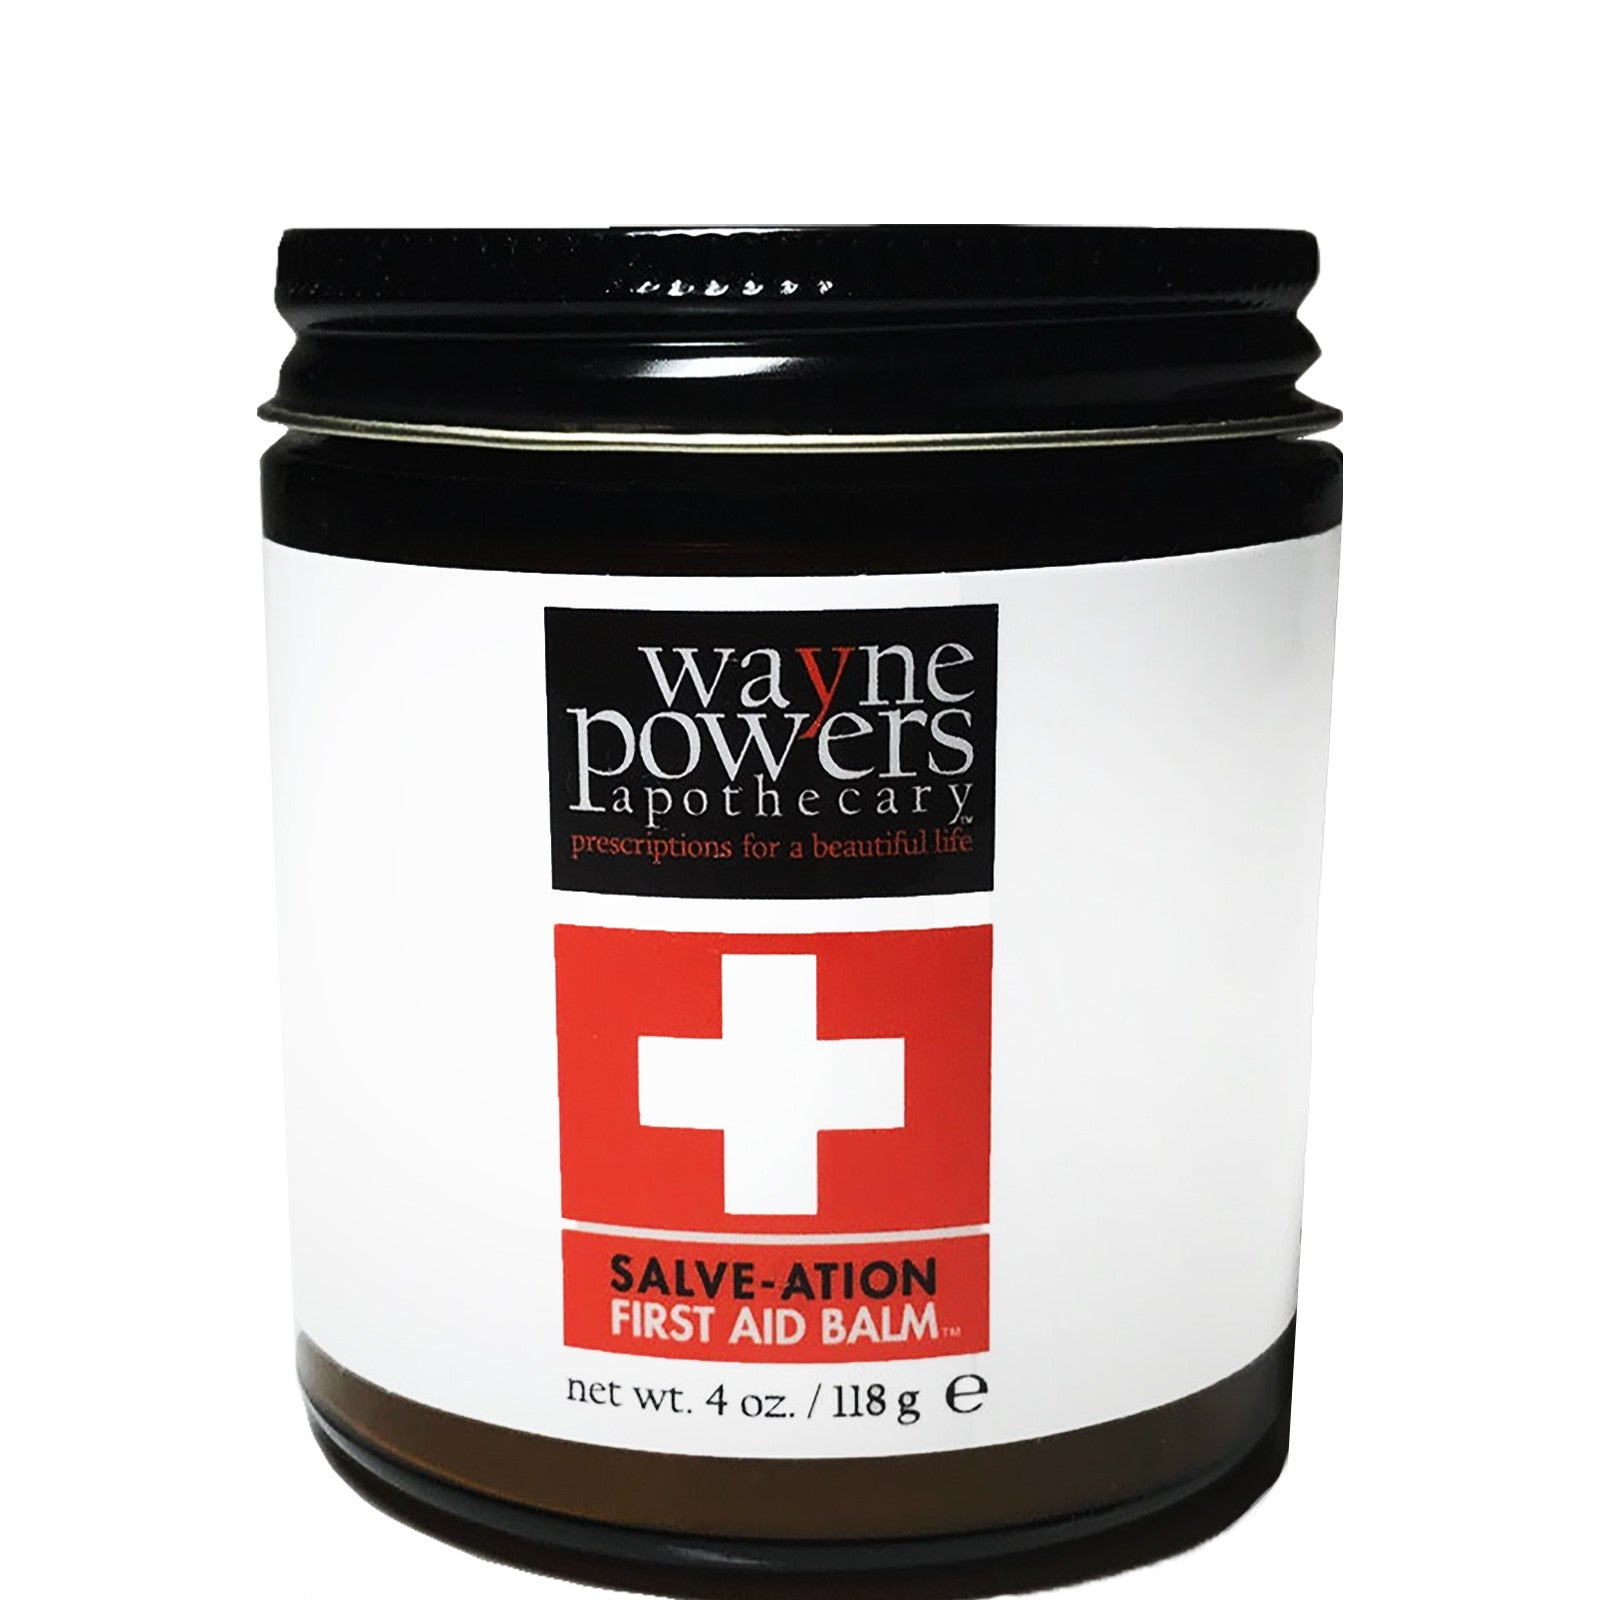 Salve-ation First Aid Balm by Wayne Powers Apothecary